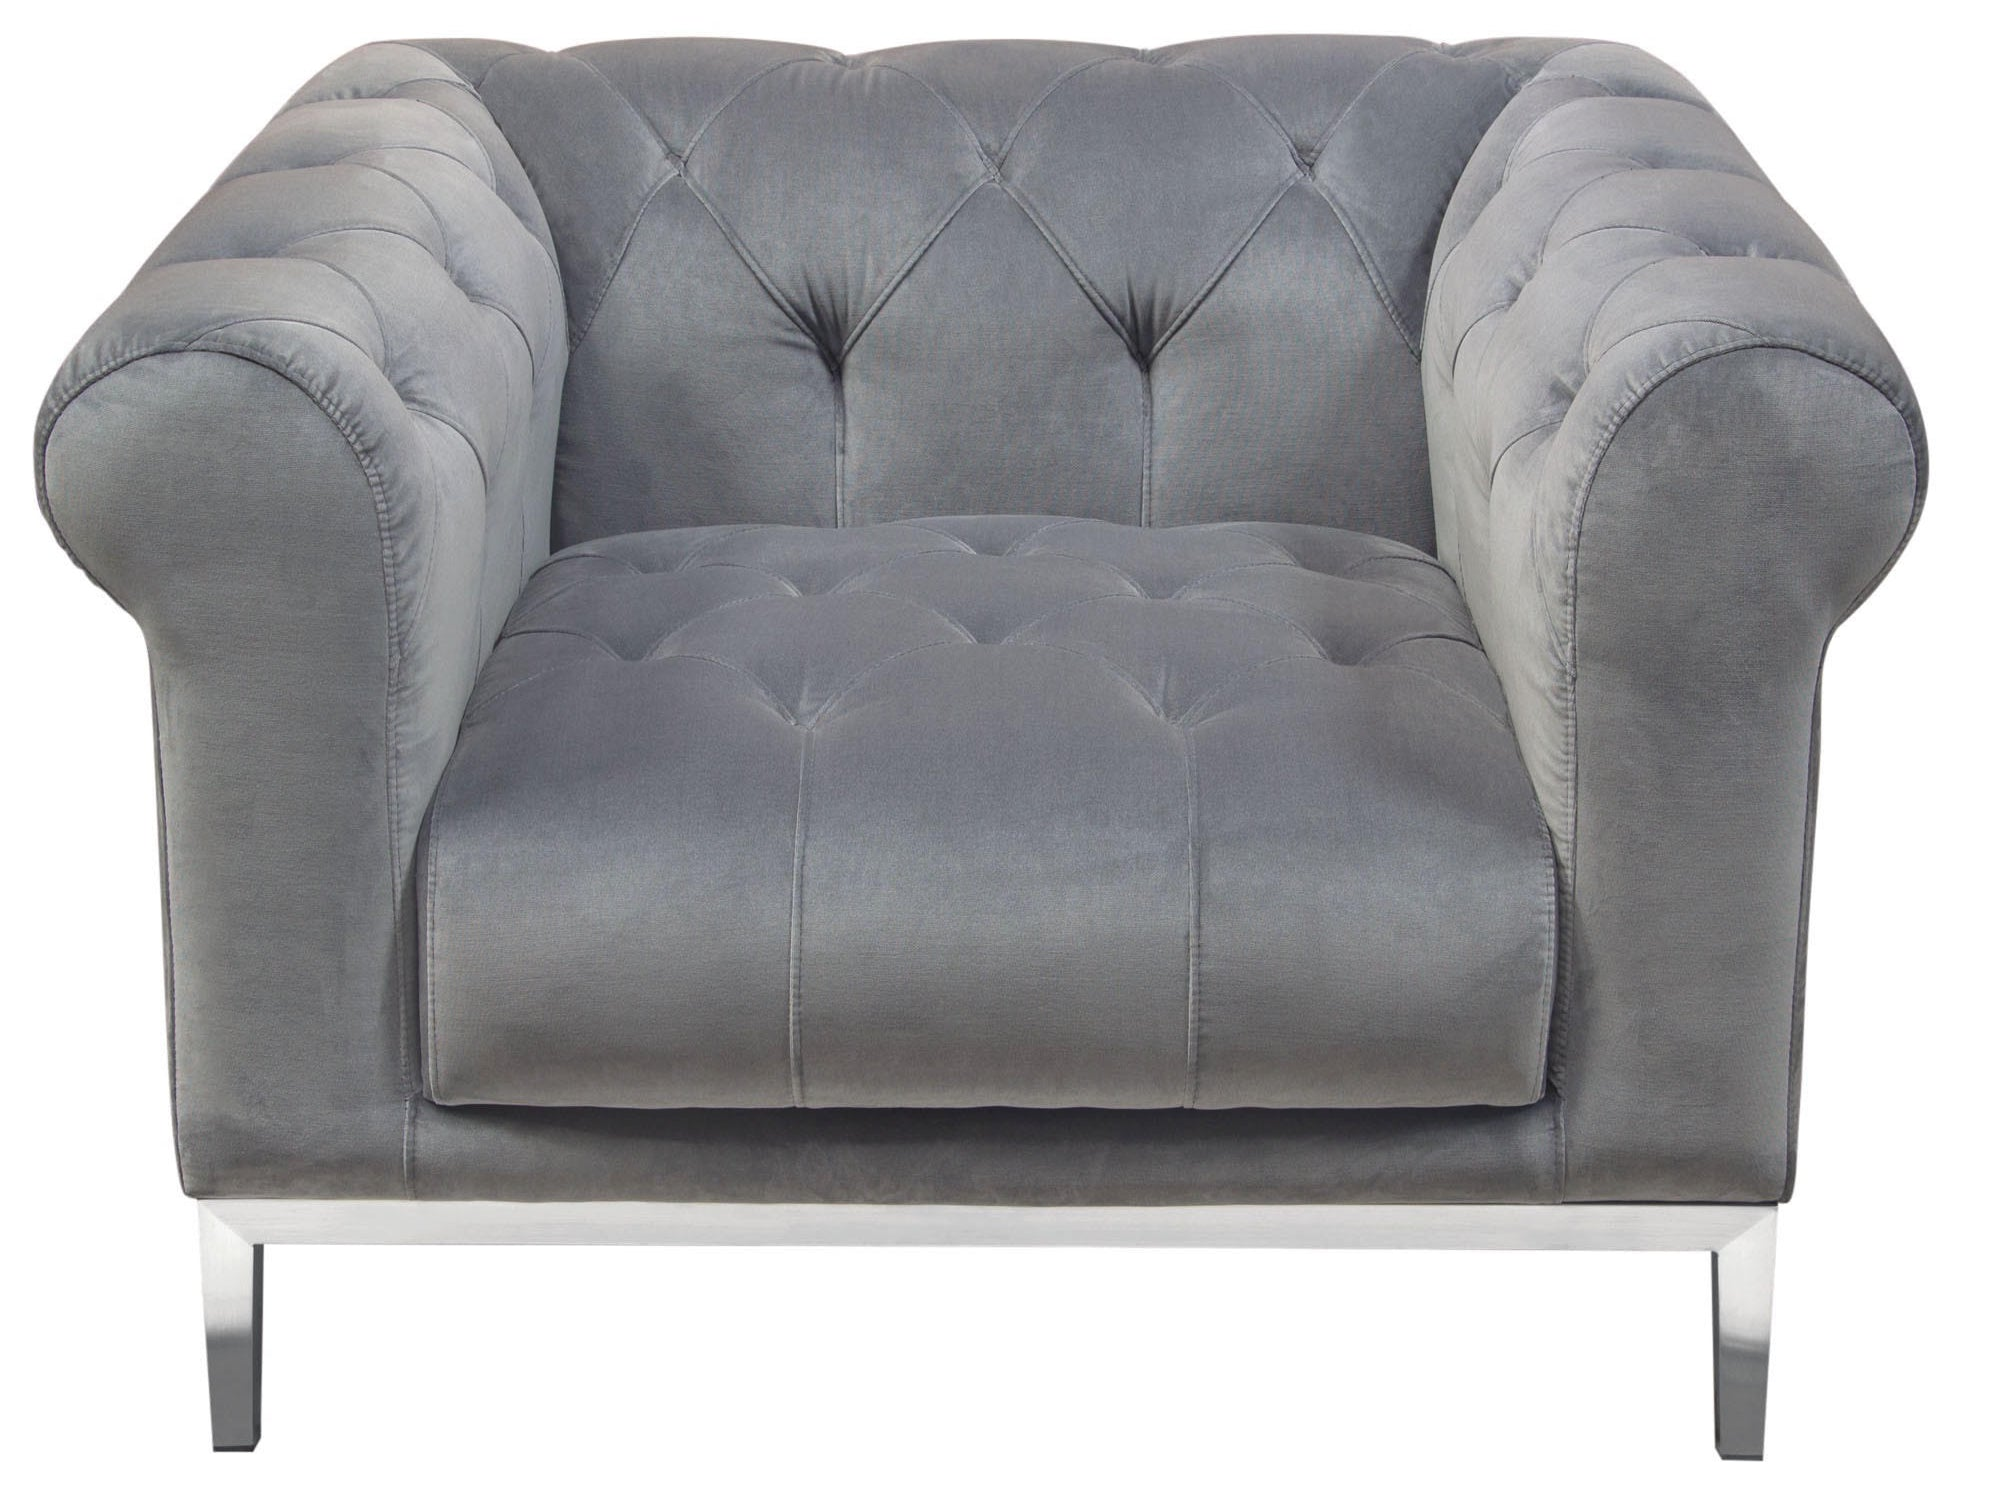 LONDON ARMCHAIR - PLATINUM GREY